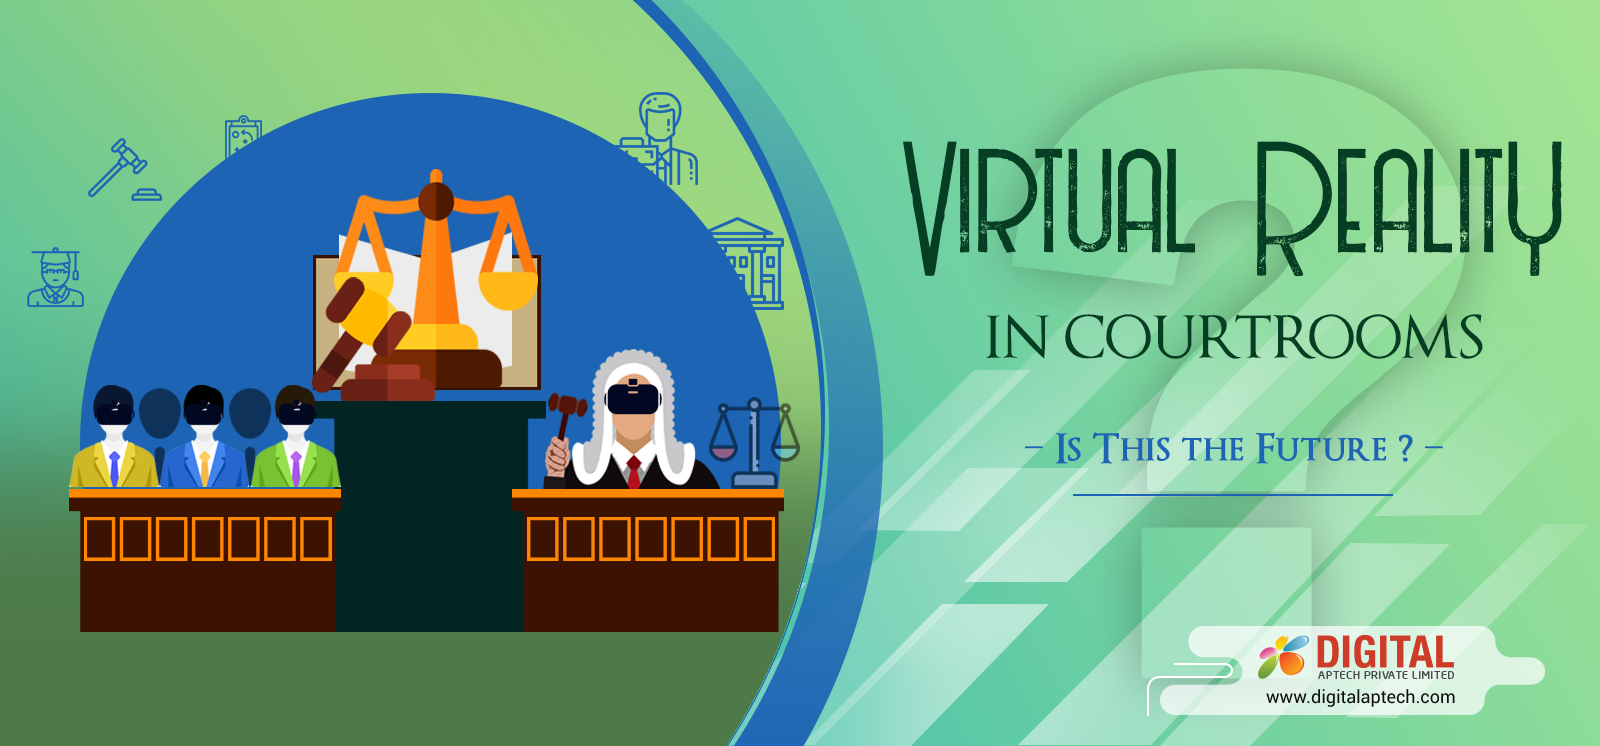 How Can You Use Virtual Reality in Courtrooms?